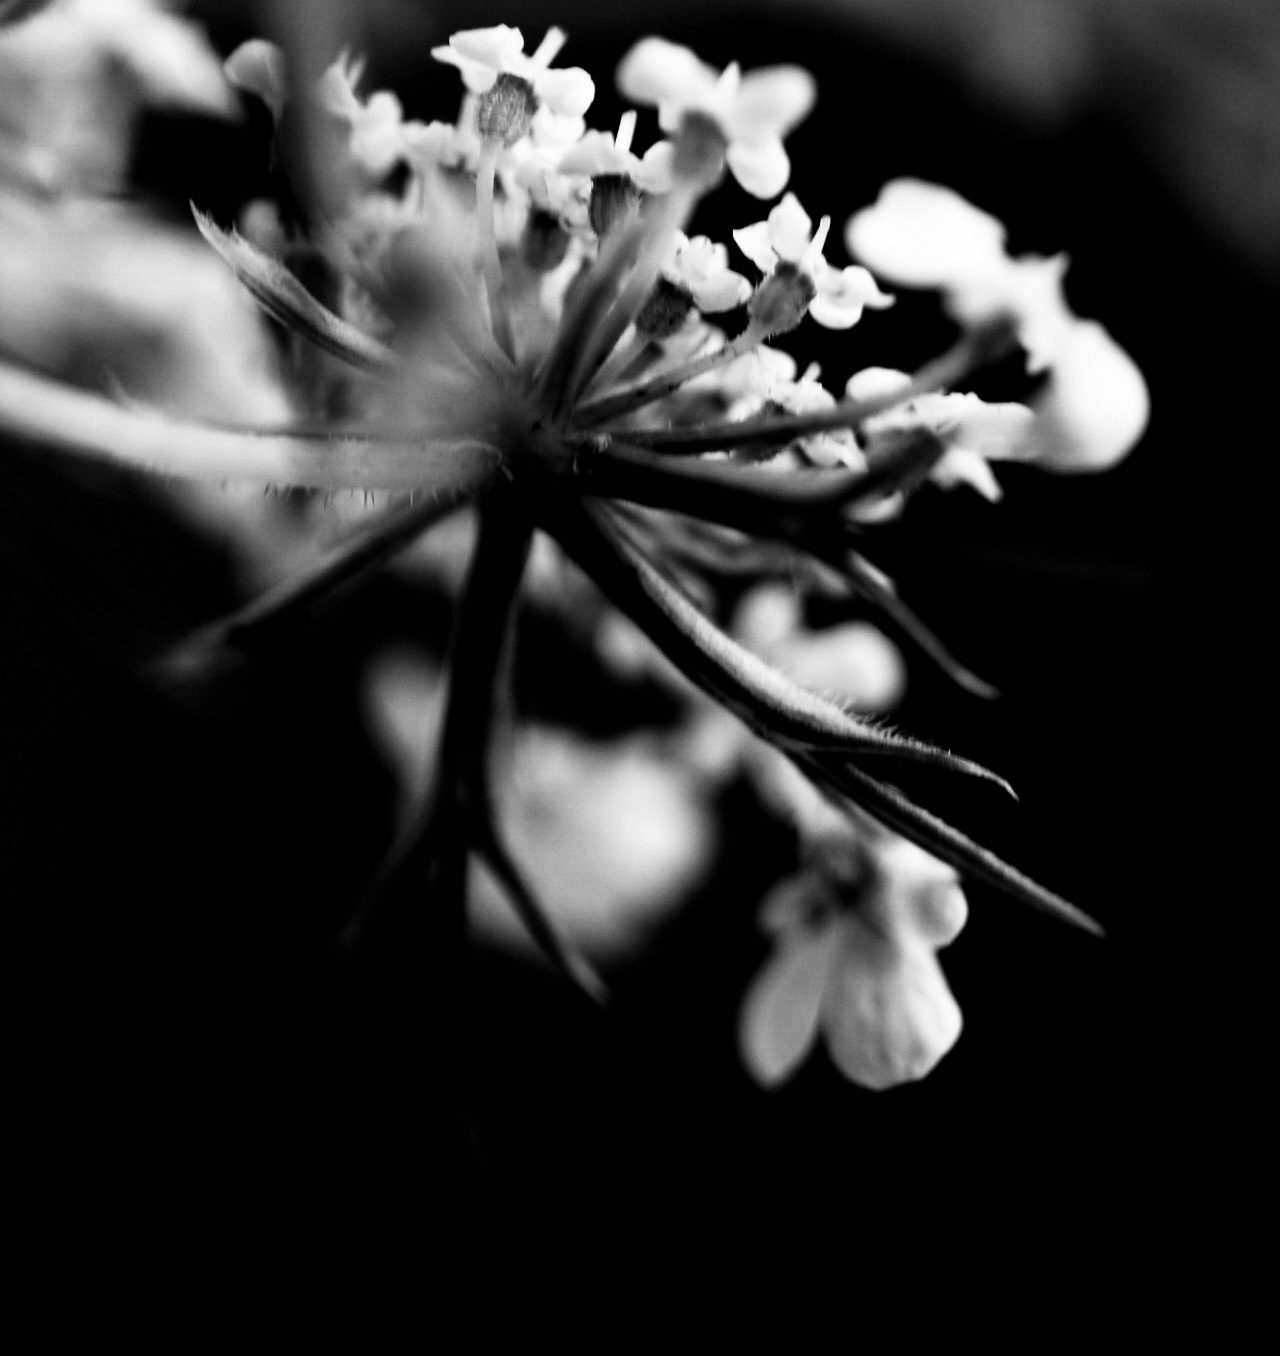 Queen Anne's Lace, whose meaning is safety and sanctuary, is captured here by a Karana Rising team member. 2018.